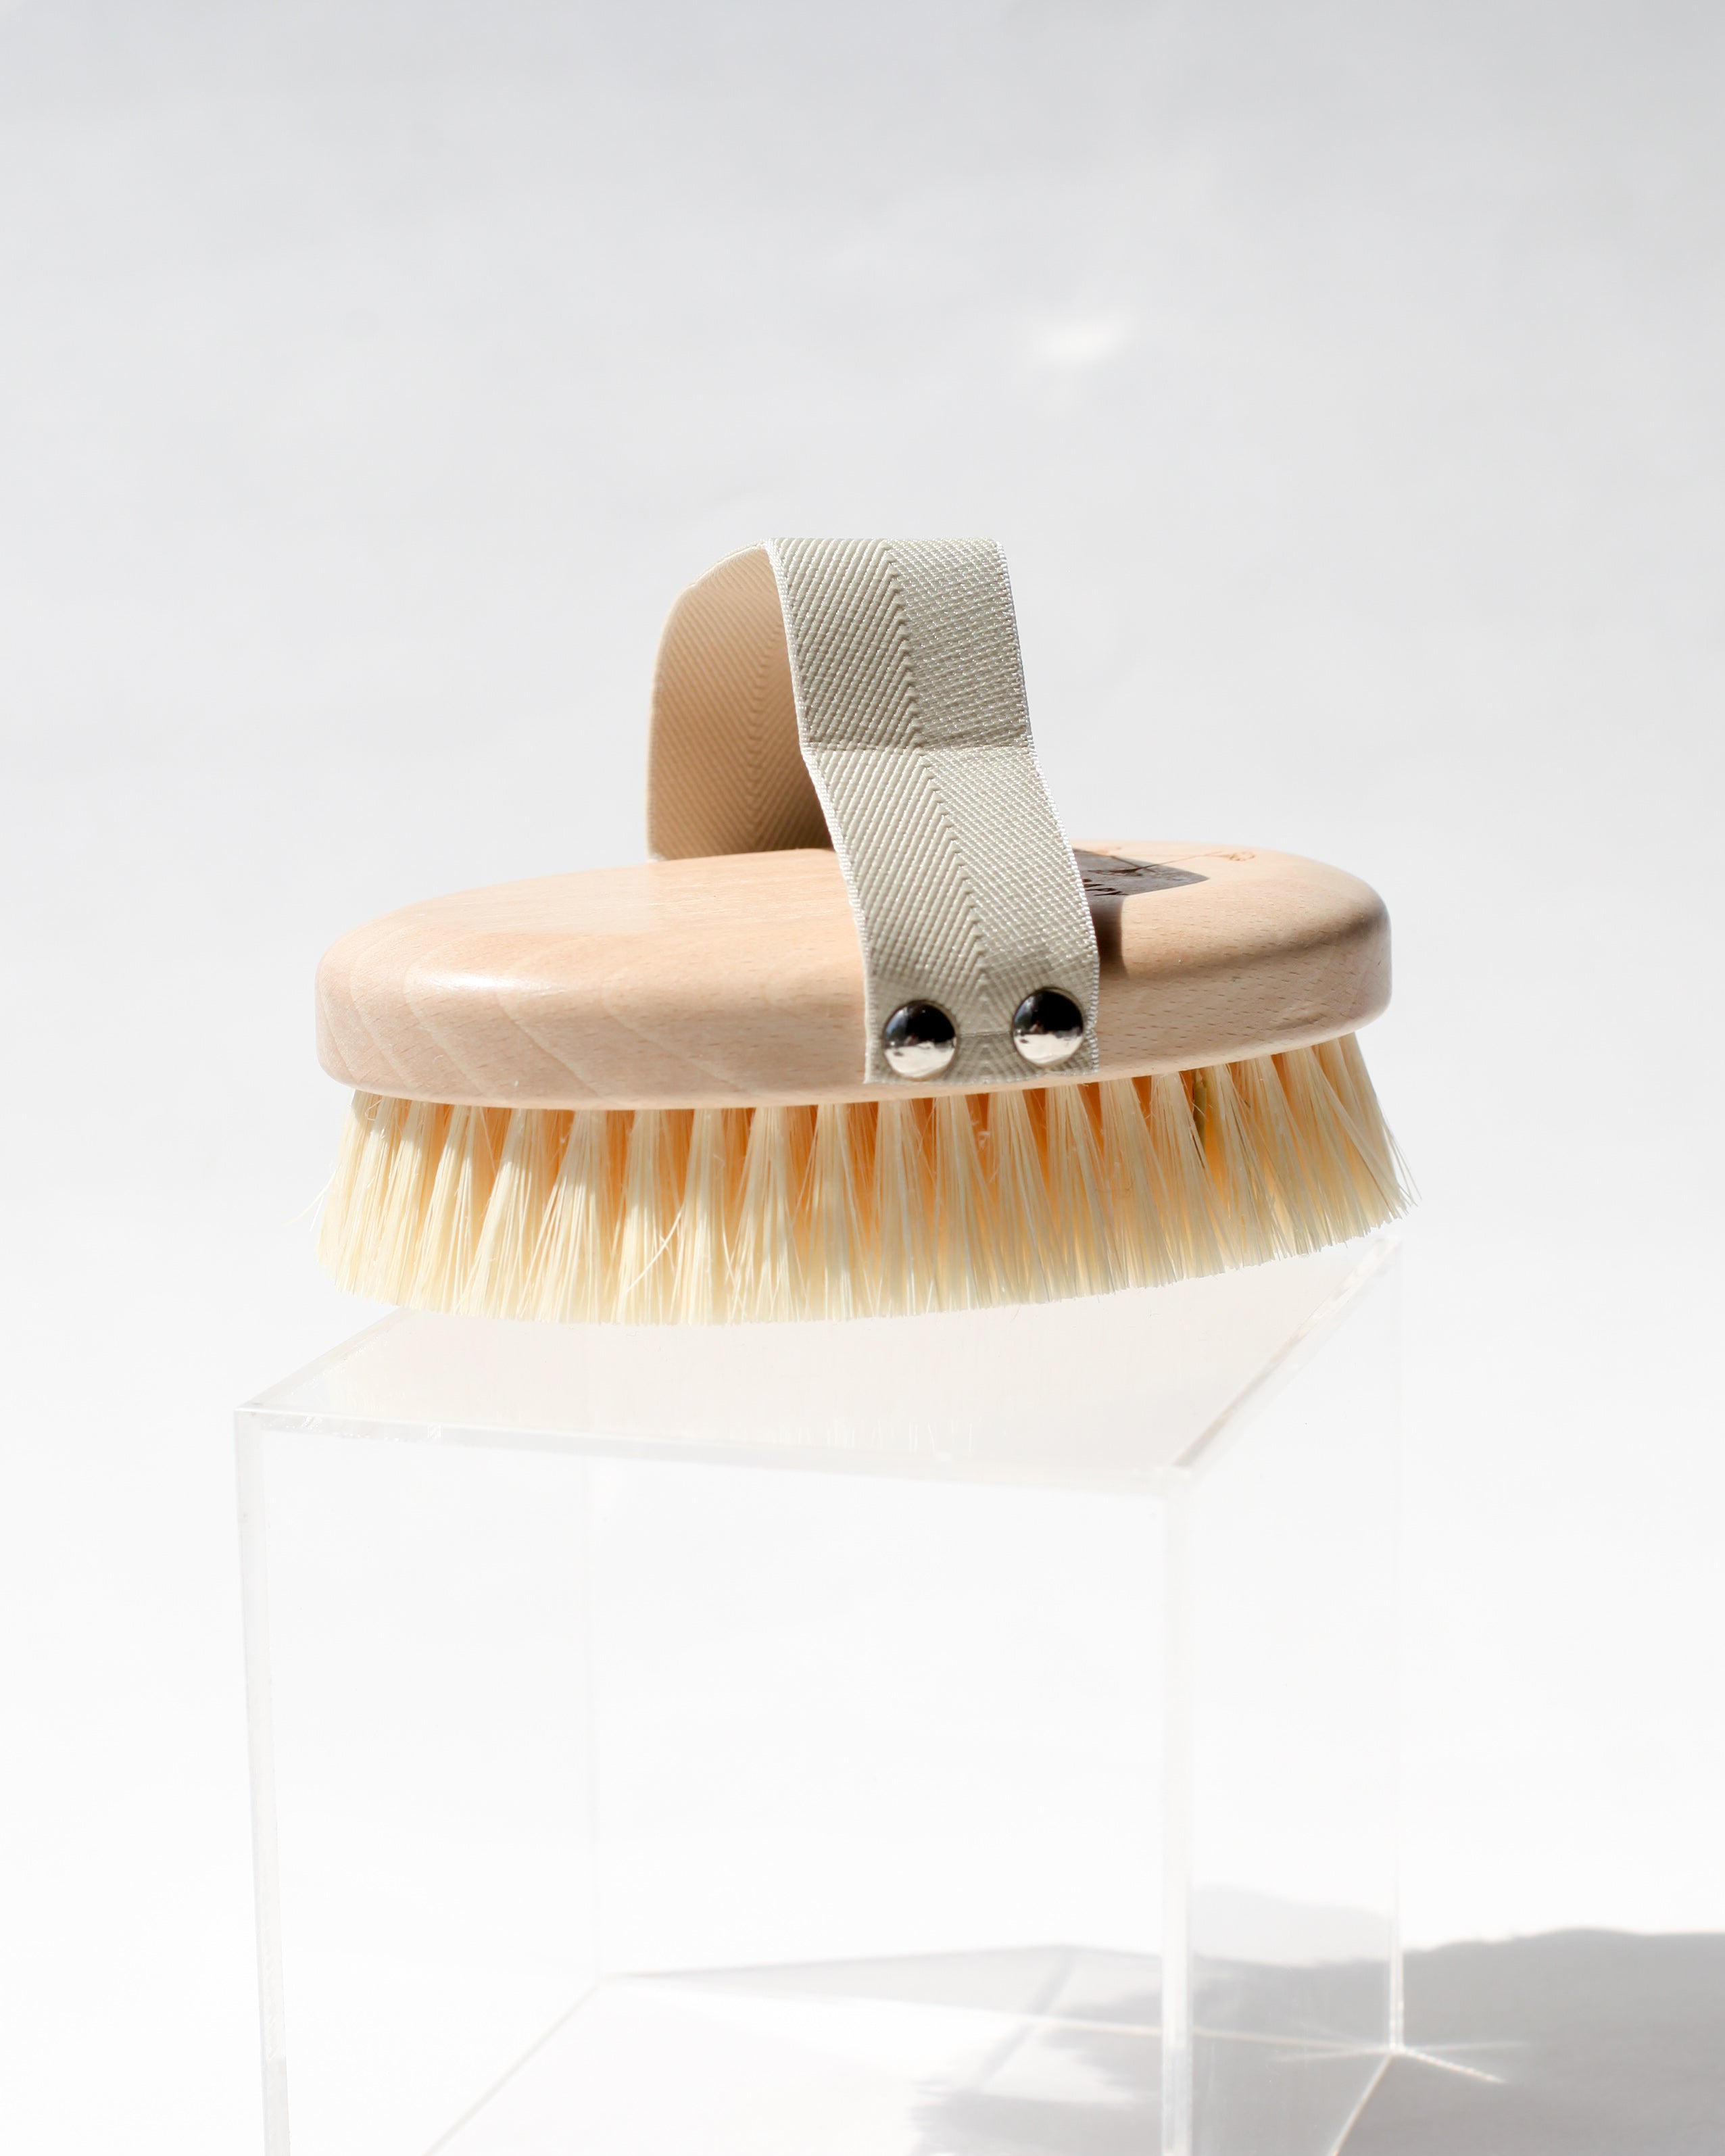 Polishing Body Brush / Aromatherapy Associates